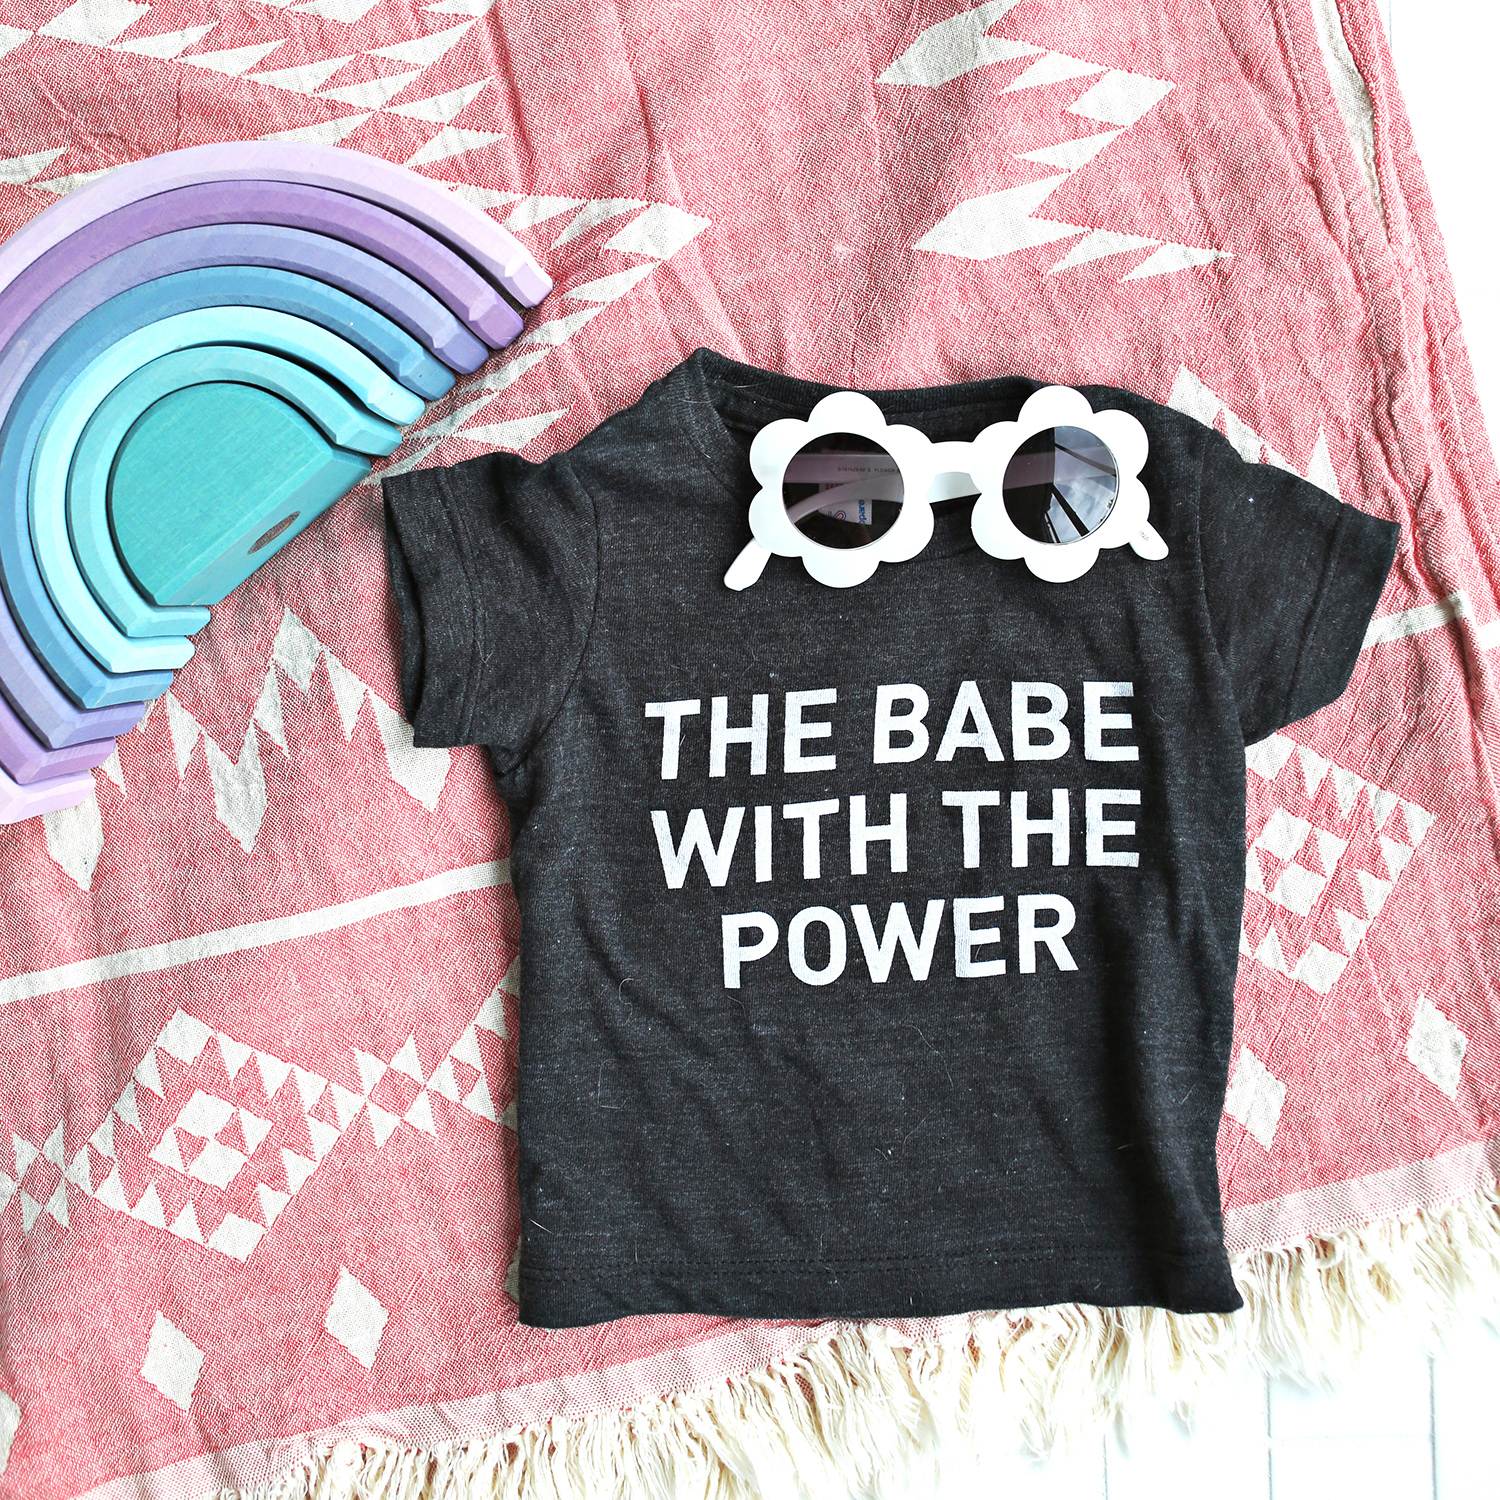 Babe with the power baby t-shirts